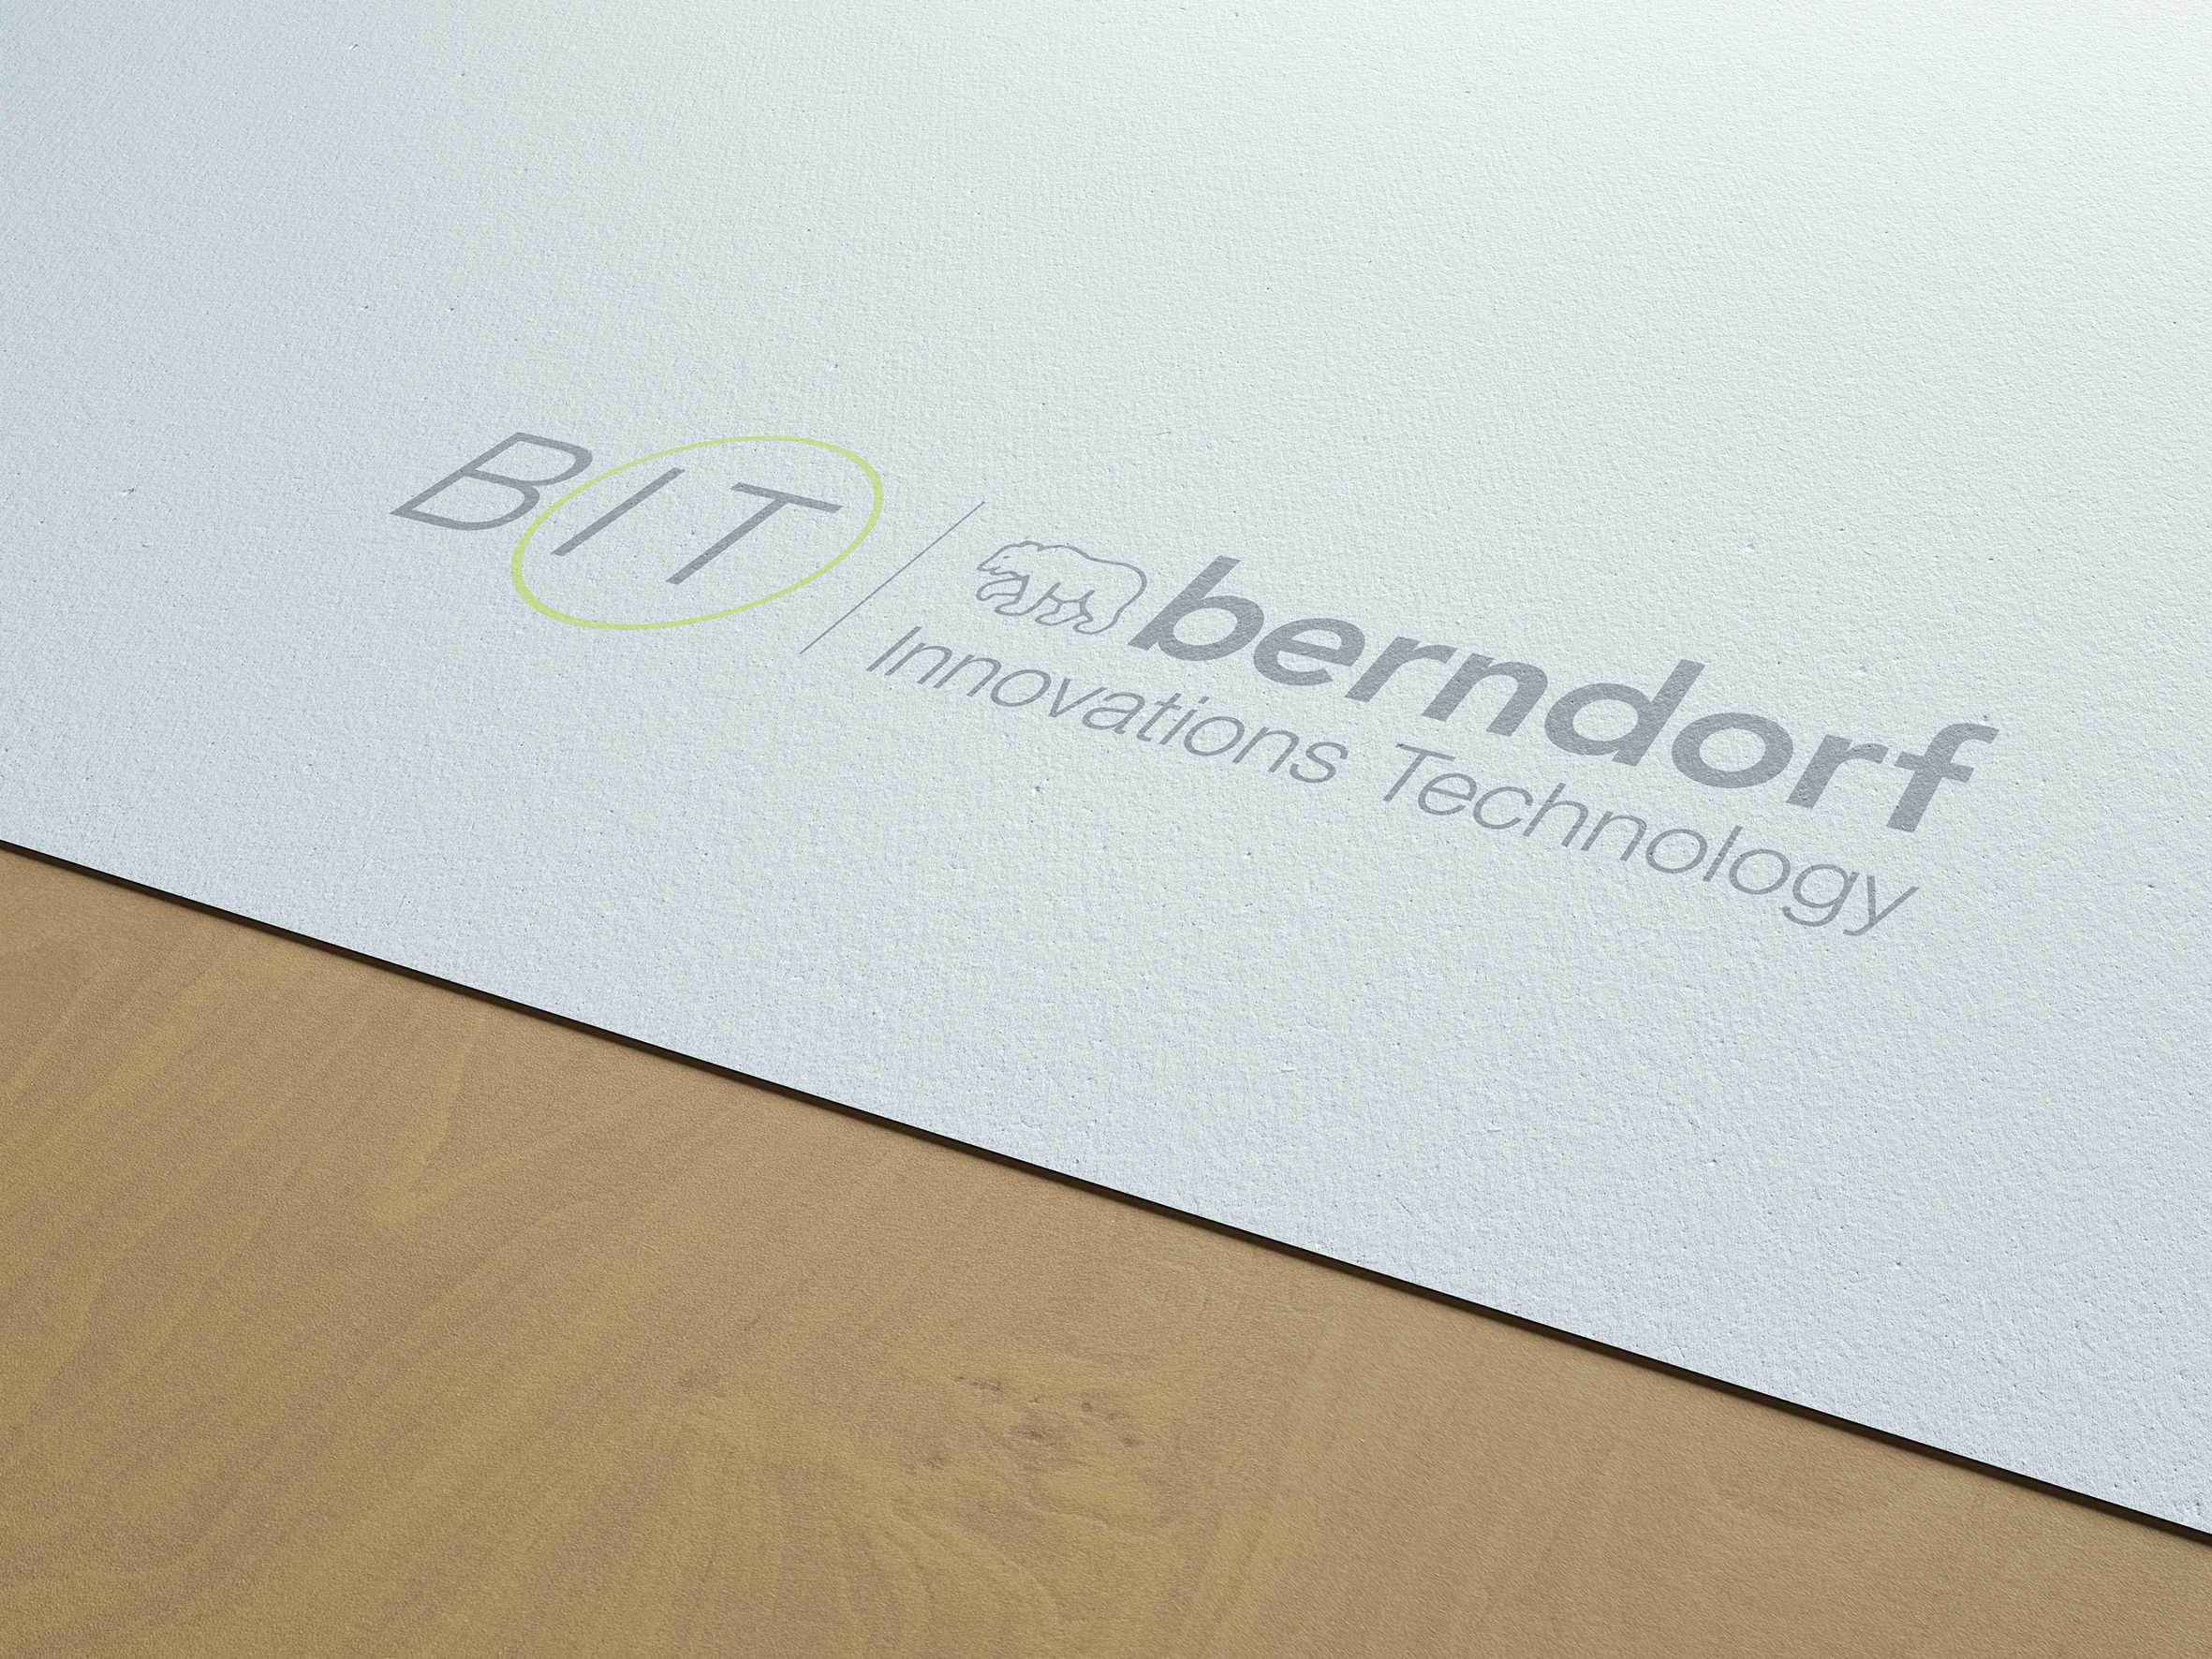 Berndorf Innovations Technology